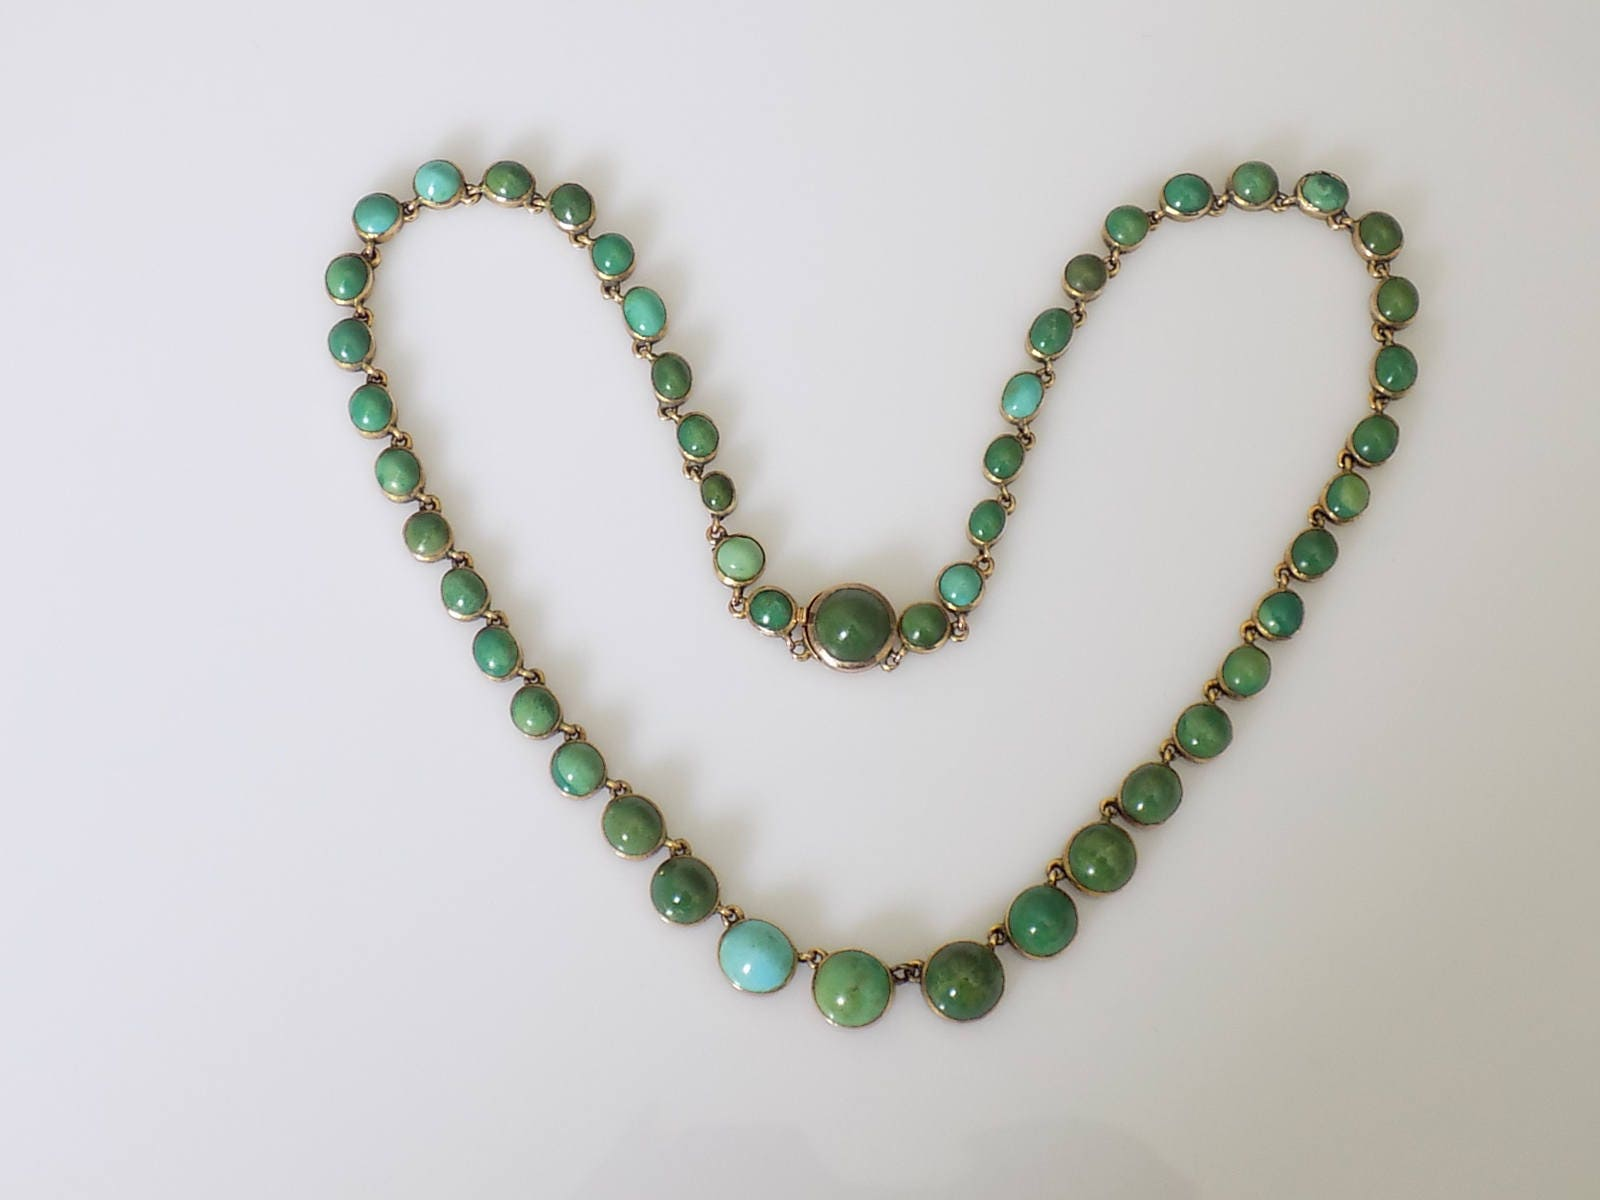 Antique Victorian Gold and Turquoise Riviere Necklace Rare Fine Jewellery Gift for Her